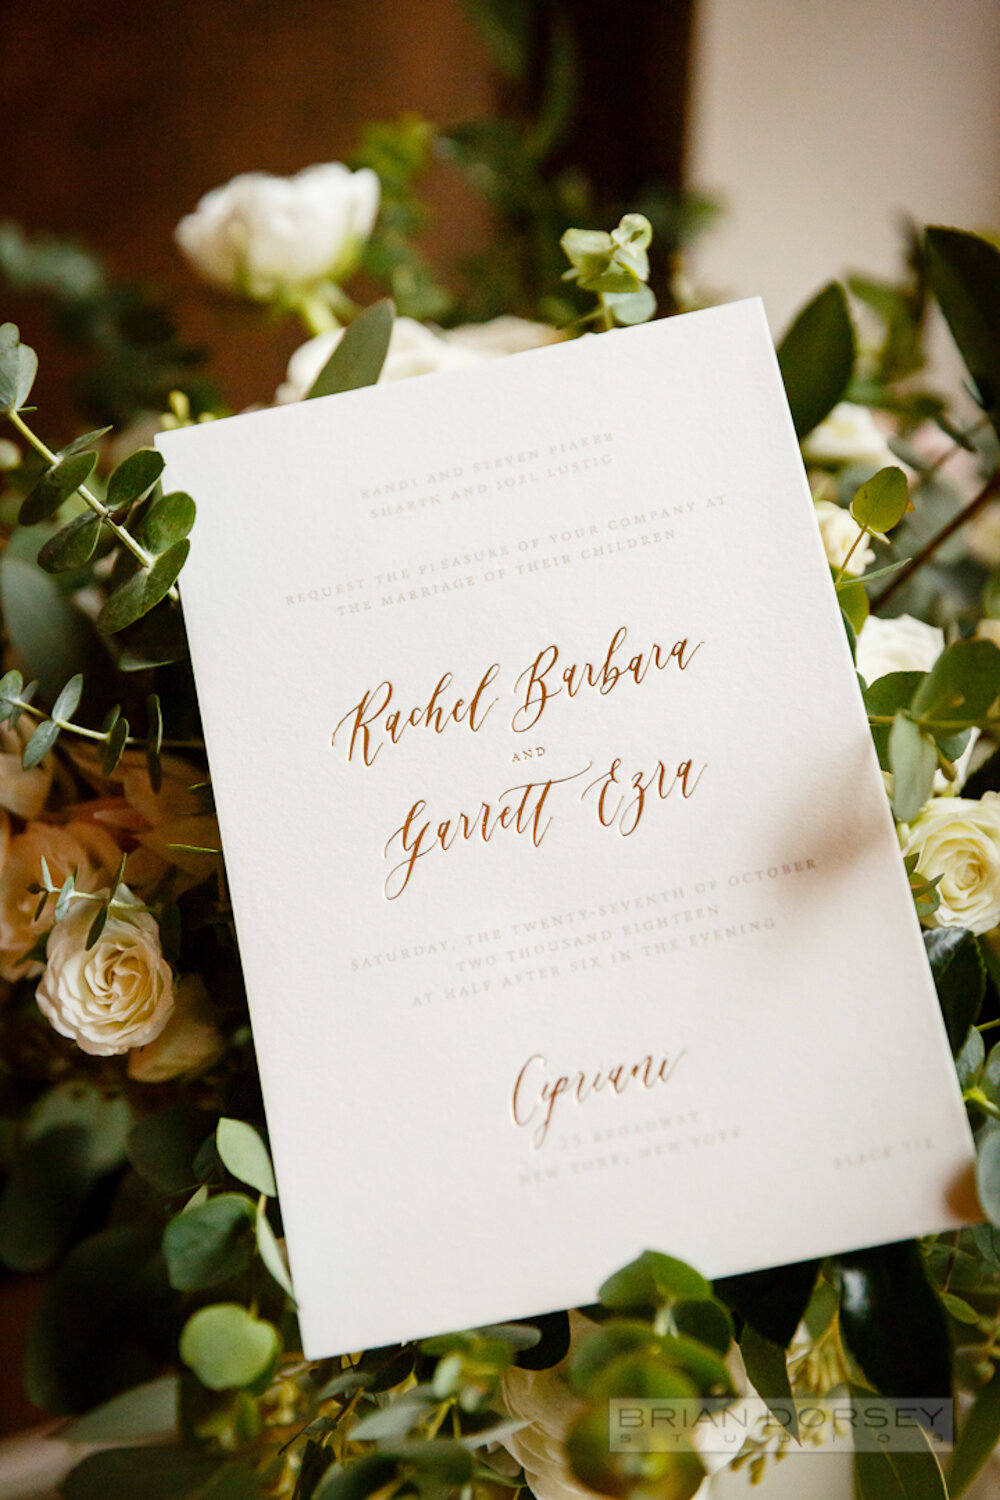 Calligraphy and metallic foil stamped wedding invitation